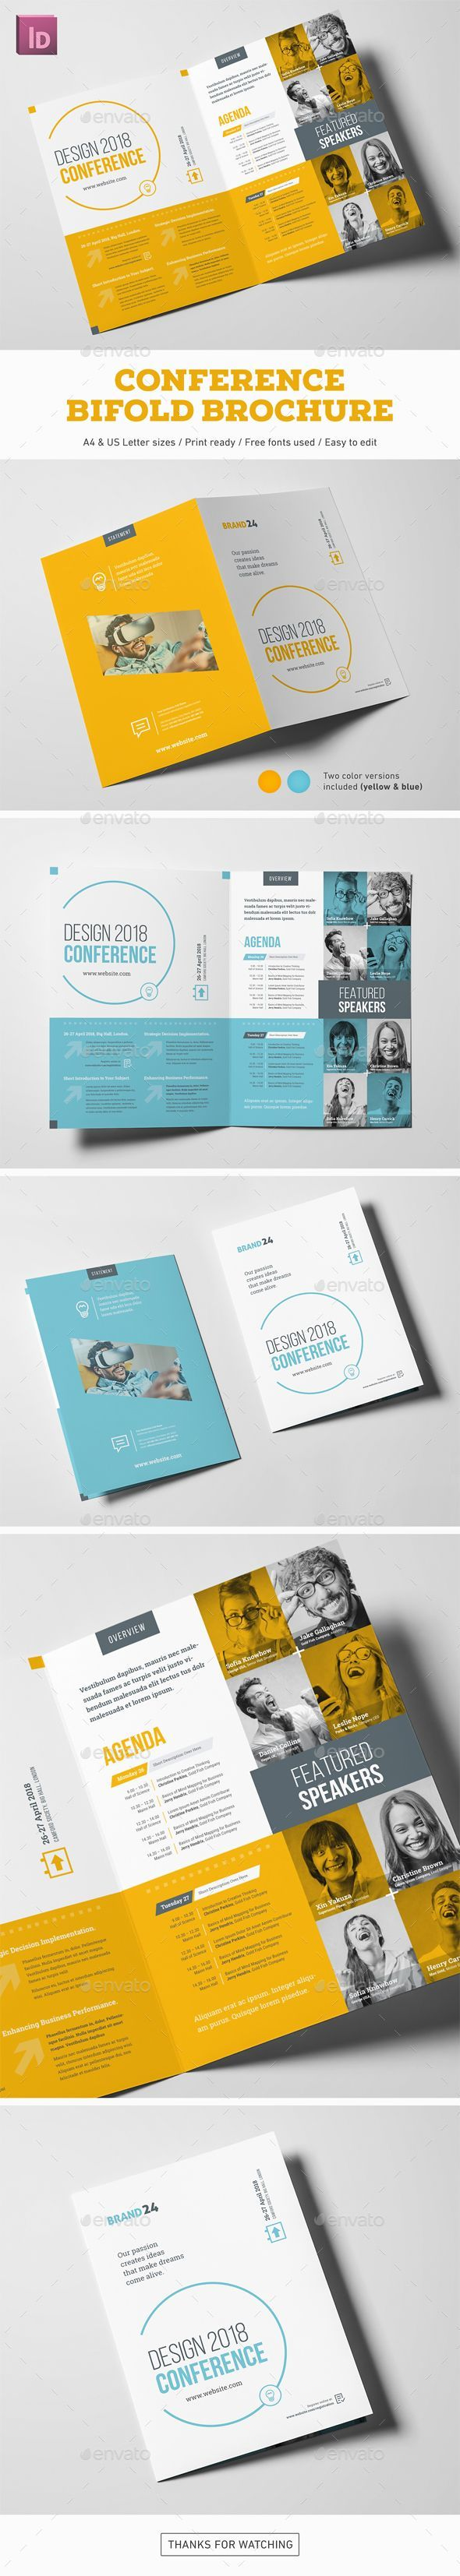 Agenda Sample Format Stunning Image Result For Corporate Branded Agenda Template  Dance For A .